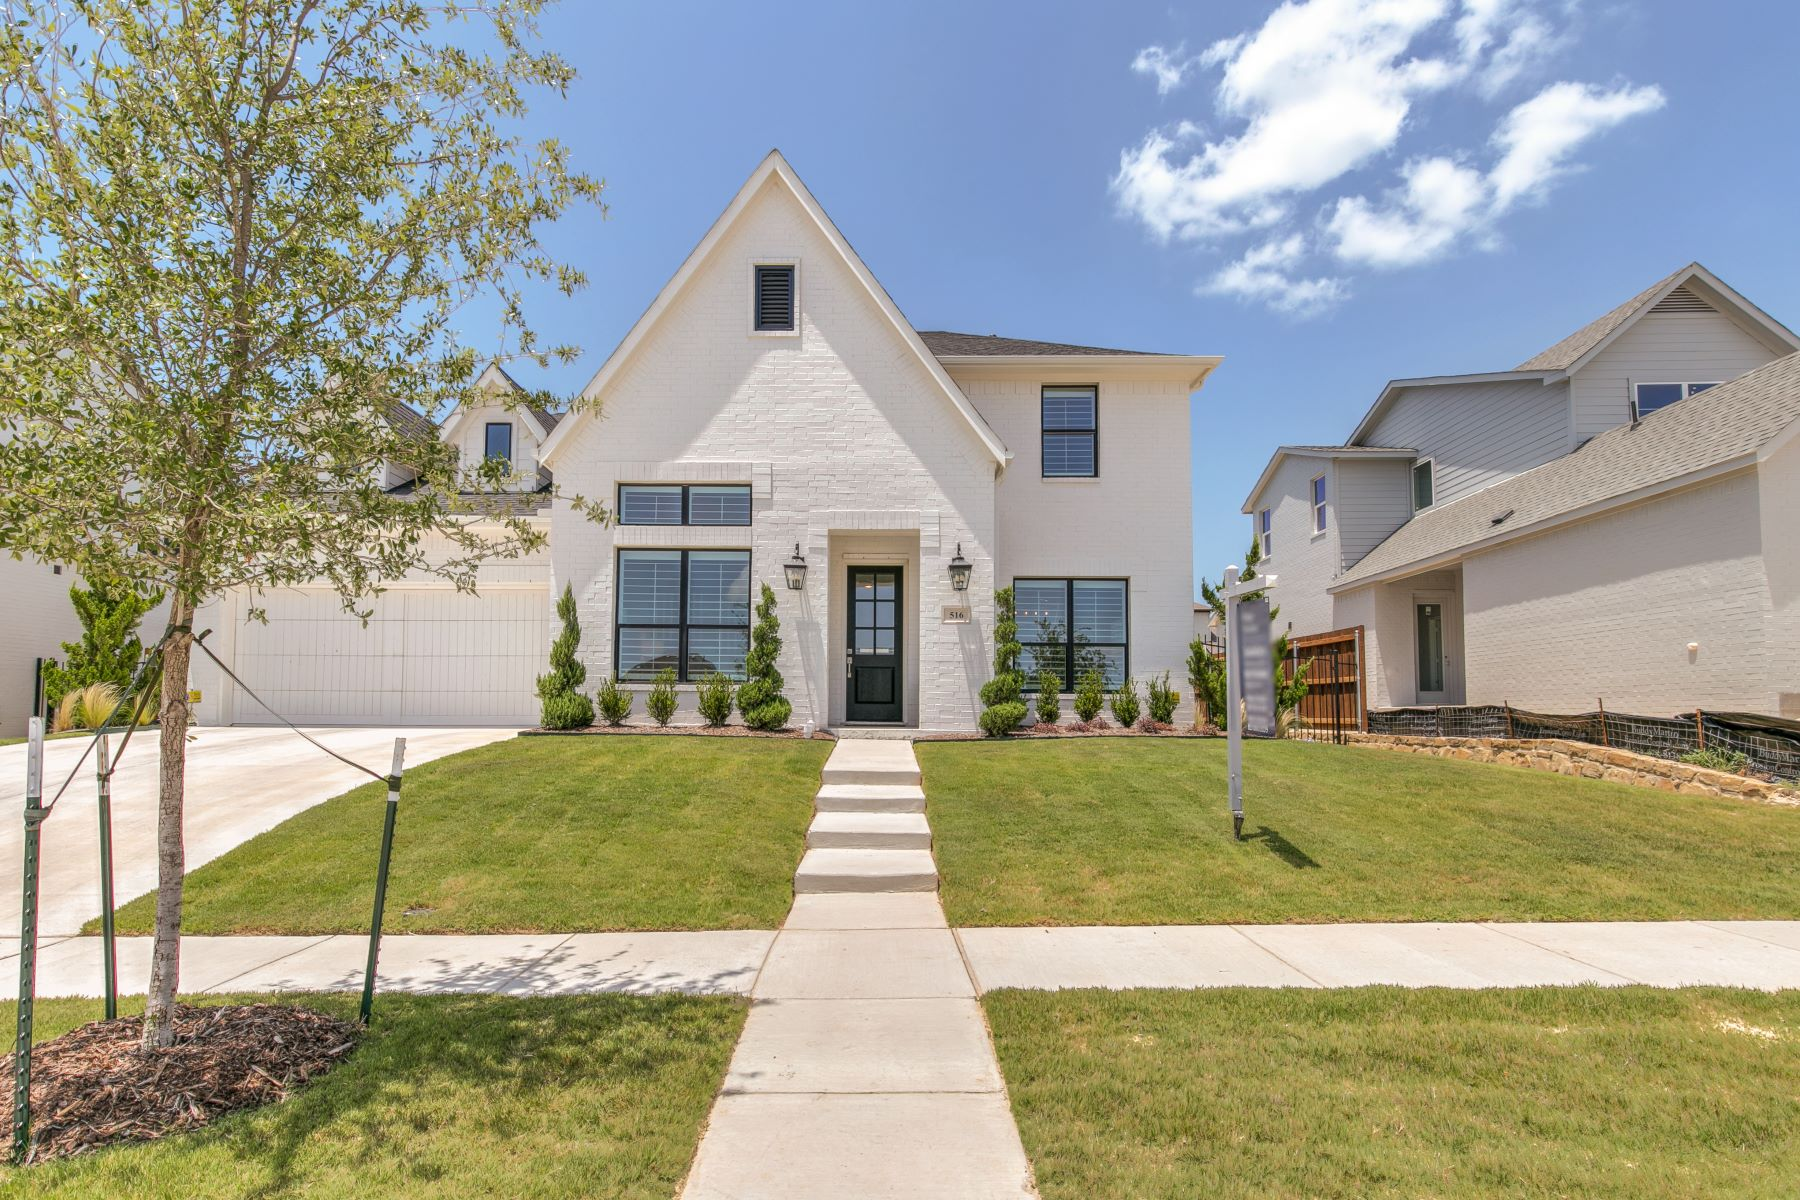 Single Family Homes for Sale at Newly constructed Village Homes masterpiece on larger lot in sought after Aledo 516 Point Vista Drive Aledo, Texas 76008 United States